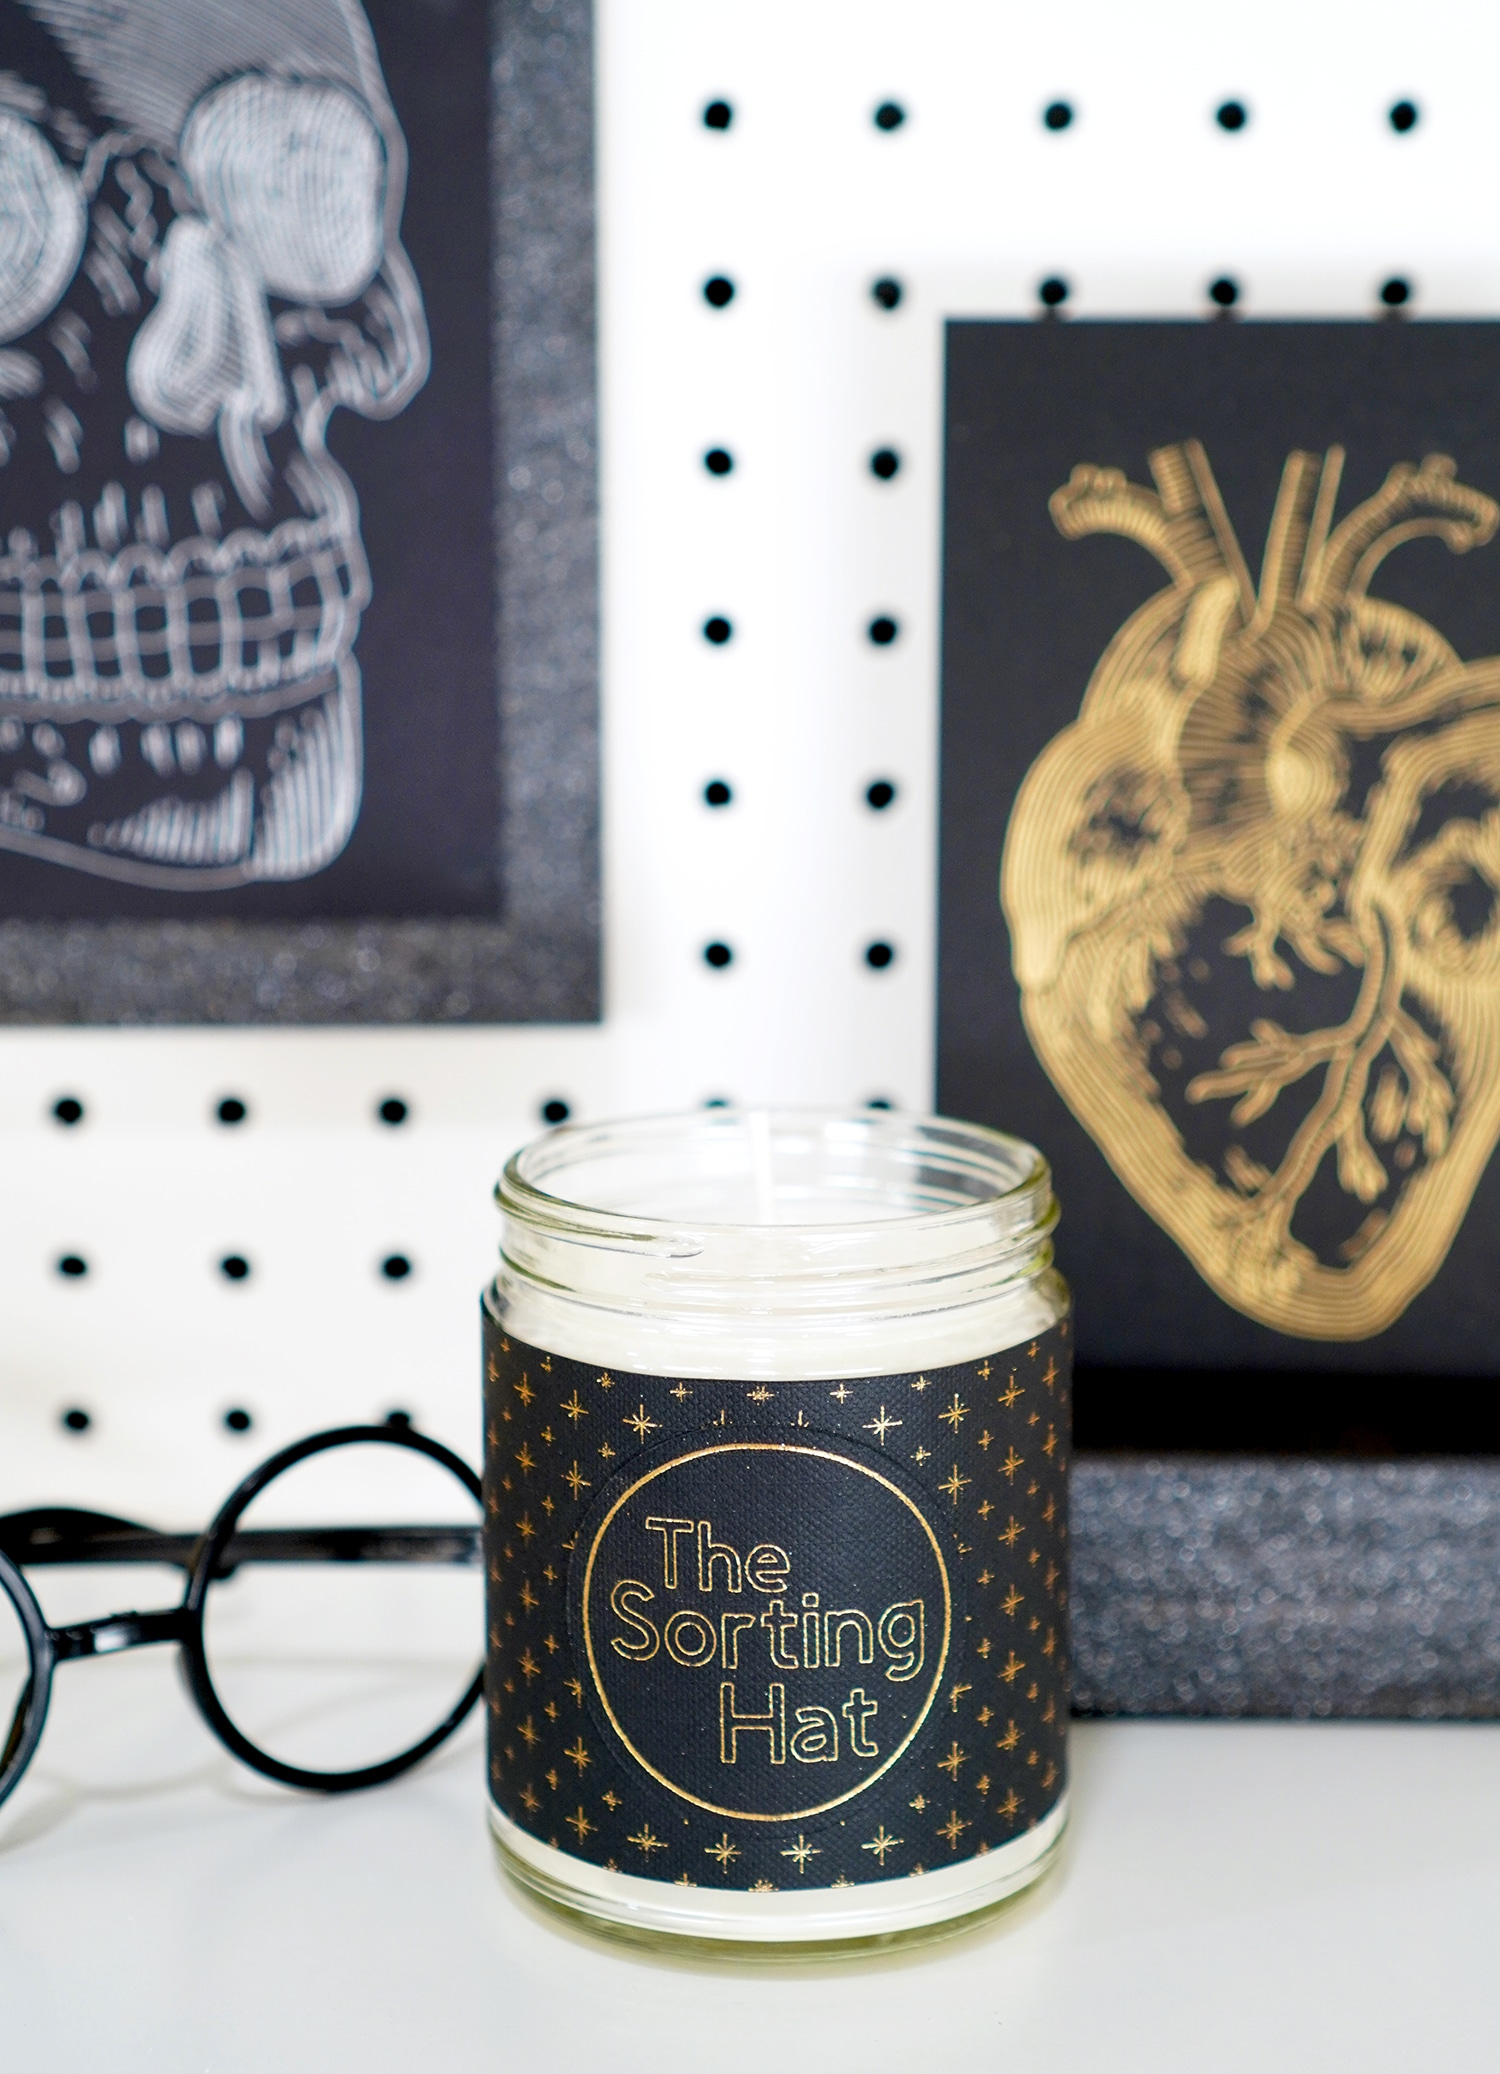 """The Sorting Hat"" candle with black label with gold stars with Harry Potter glasses, foil skull and anatomical heart prints in background"